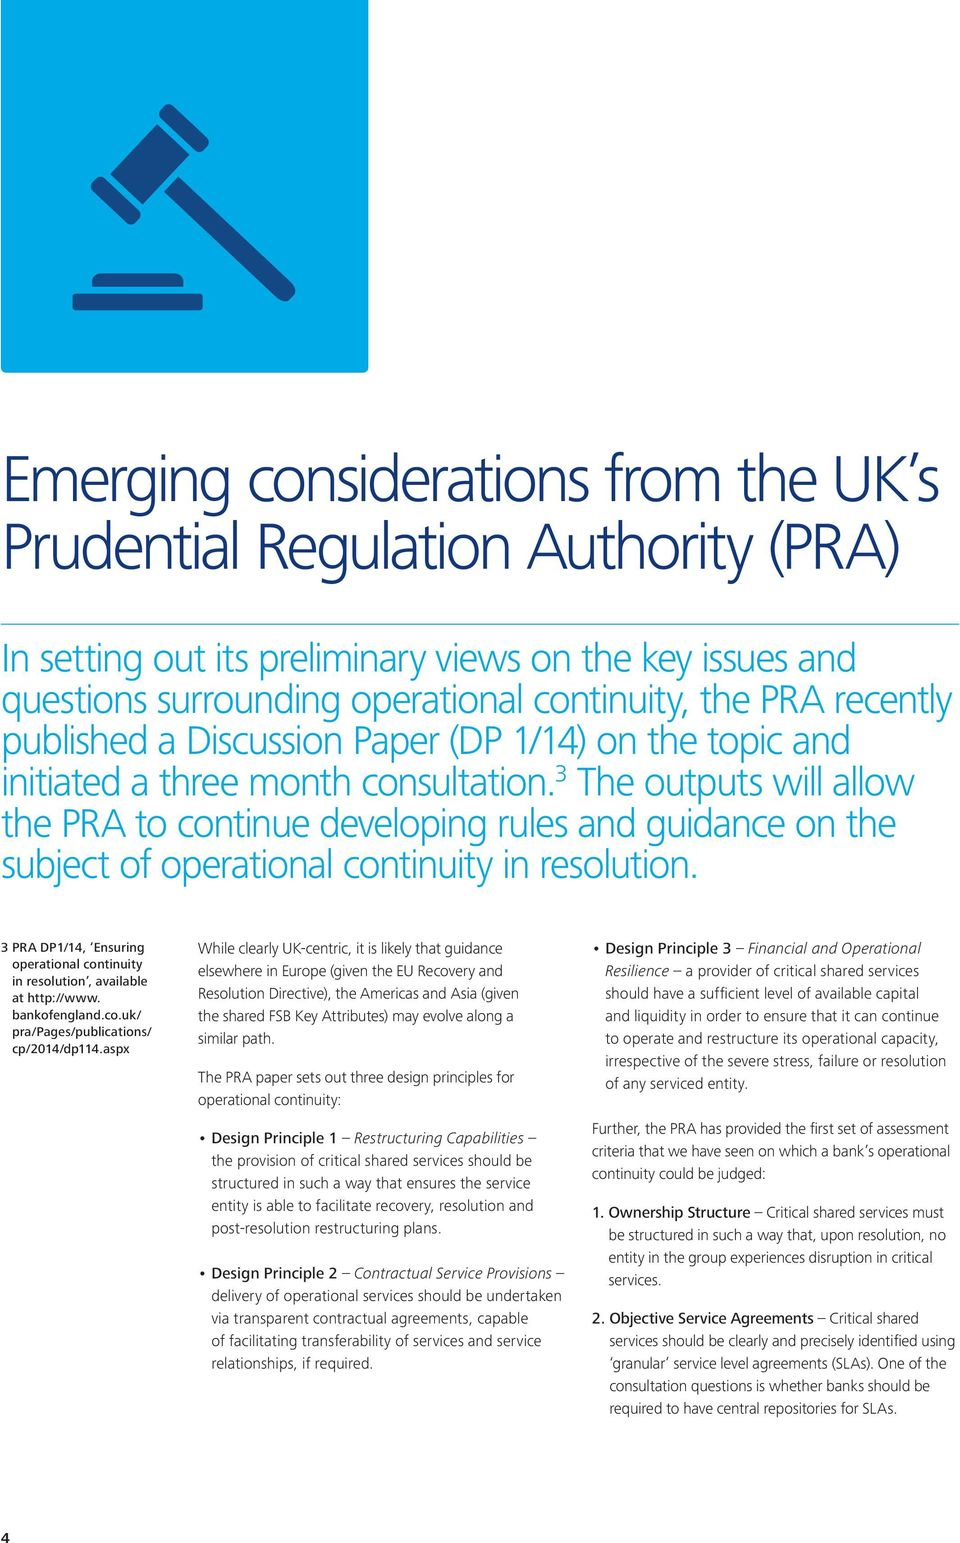 3 The outputs will allow the PRA to continue developing rules and guidance on the subject of operational continuity in resolution.